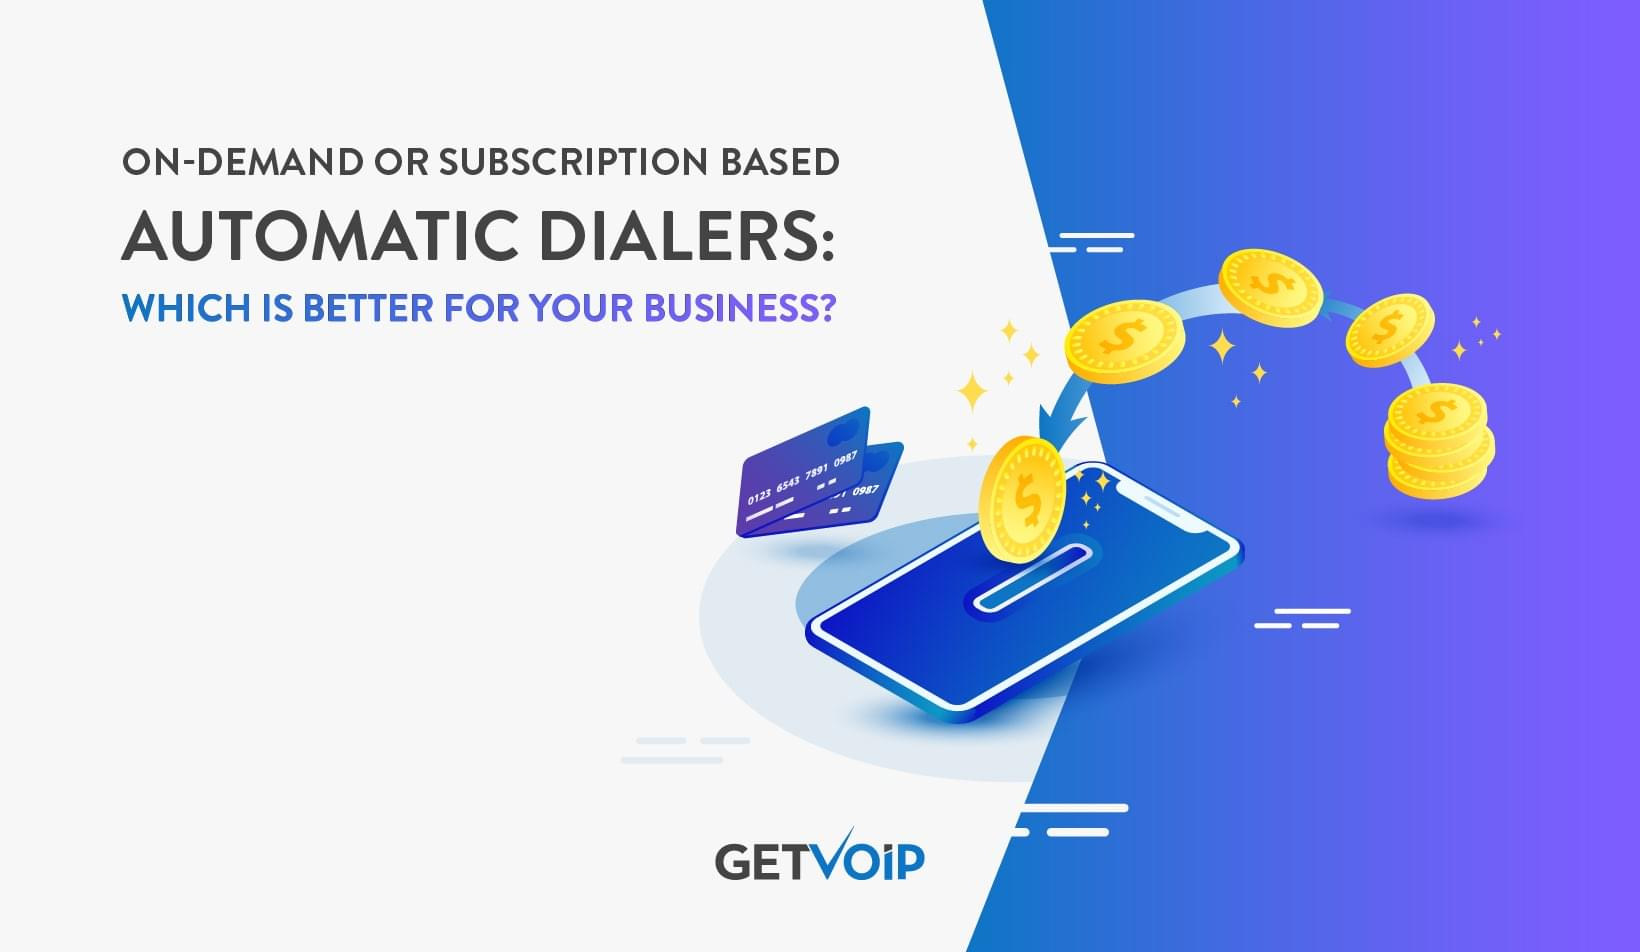 On-Demand or Subscription Based Automatic Dialers: Which is Better For Your Business?